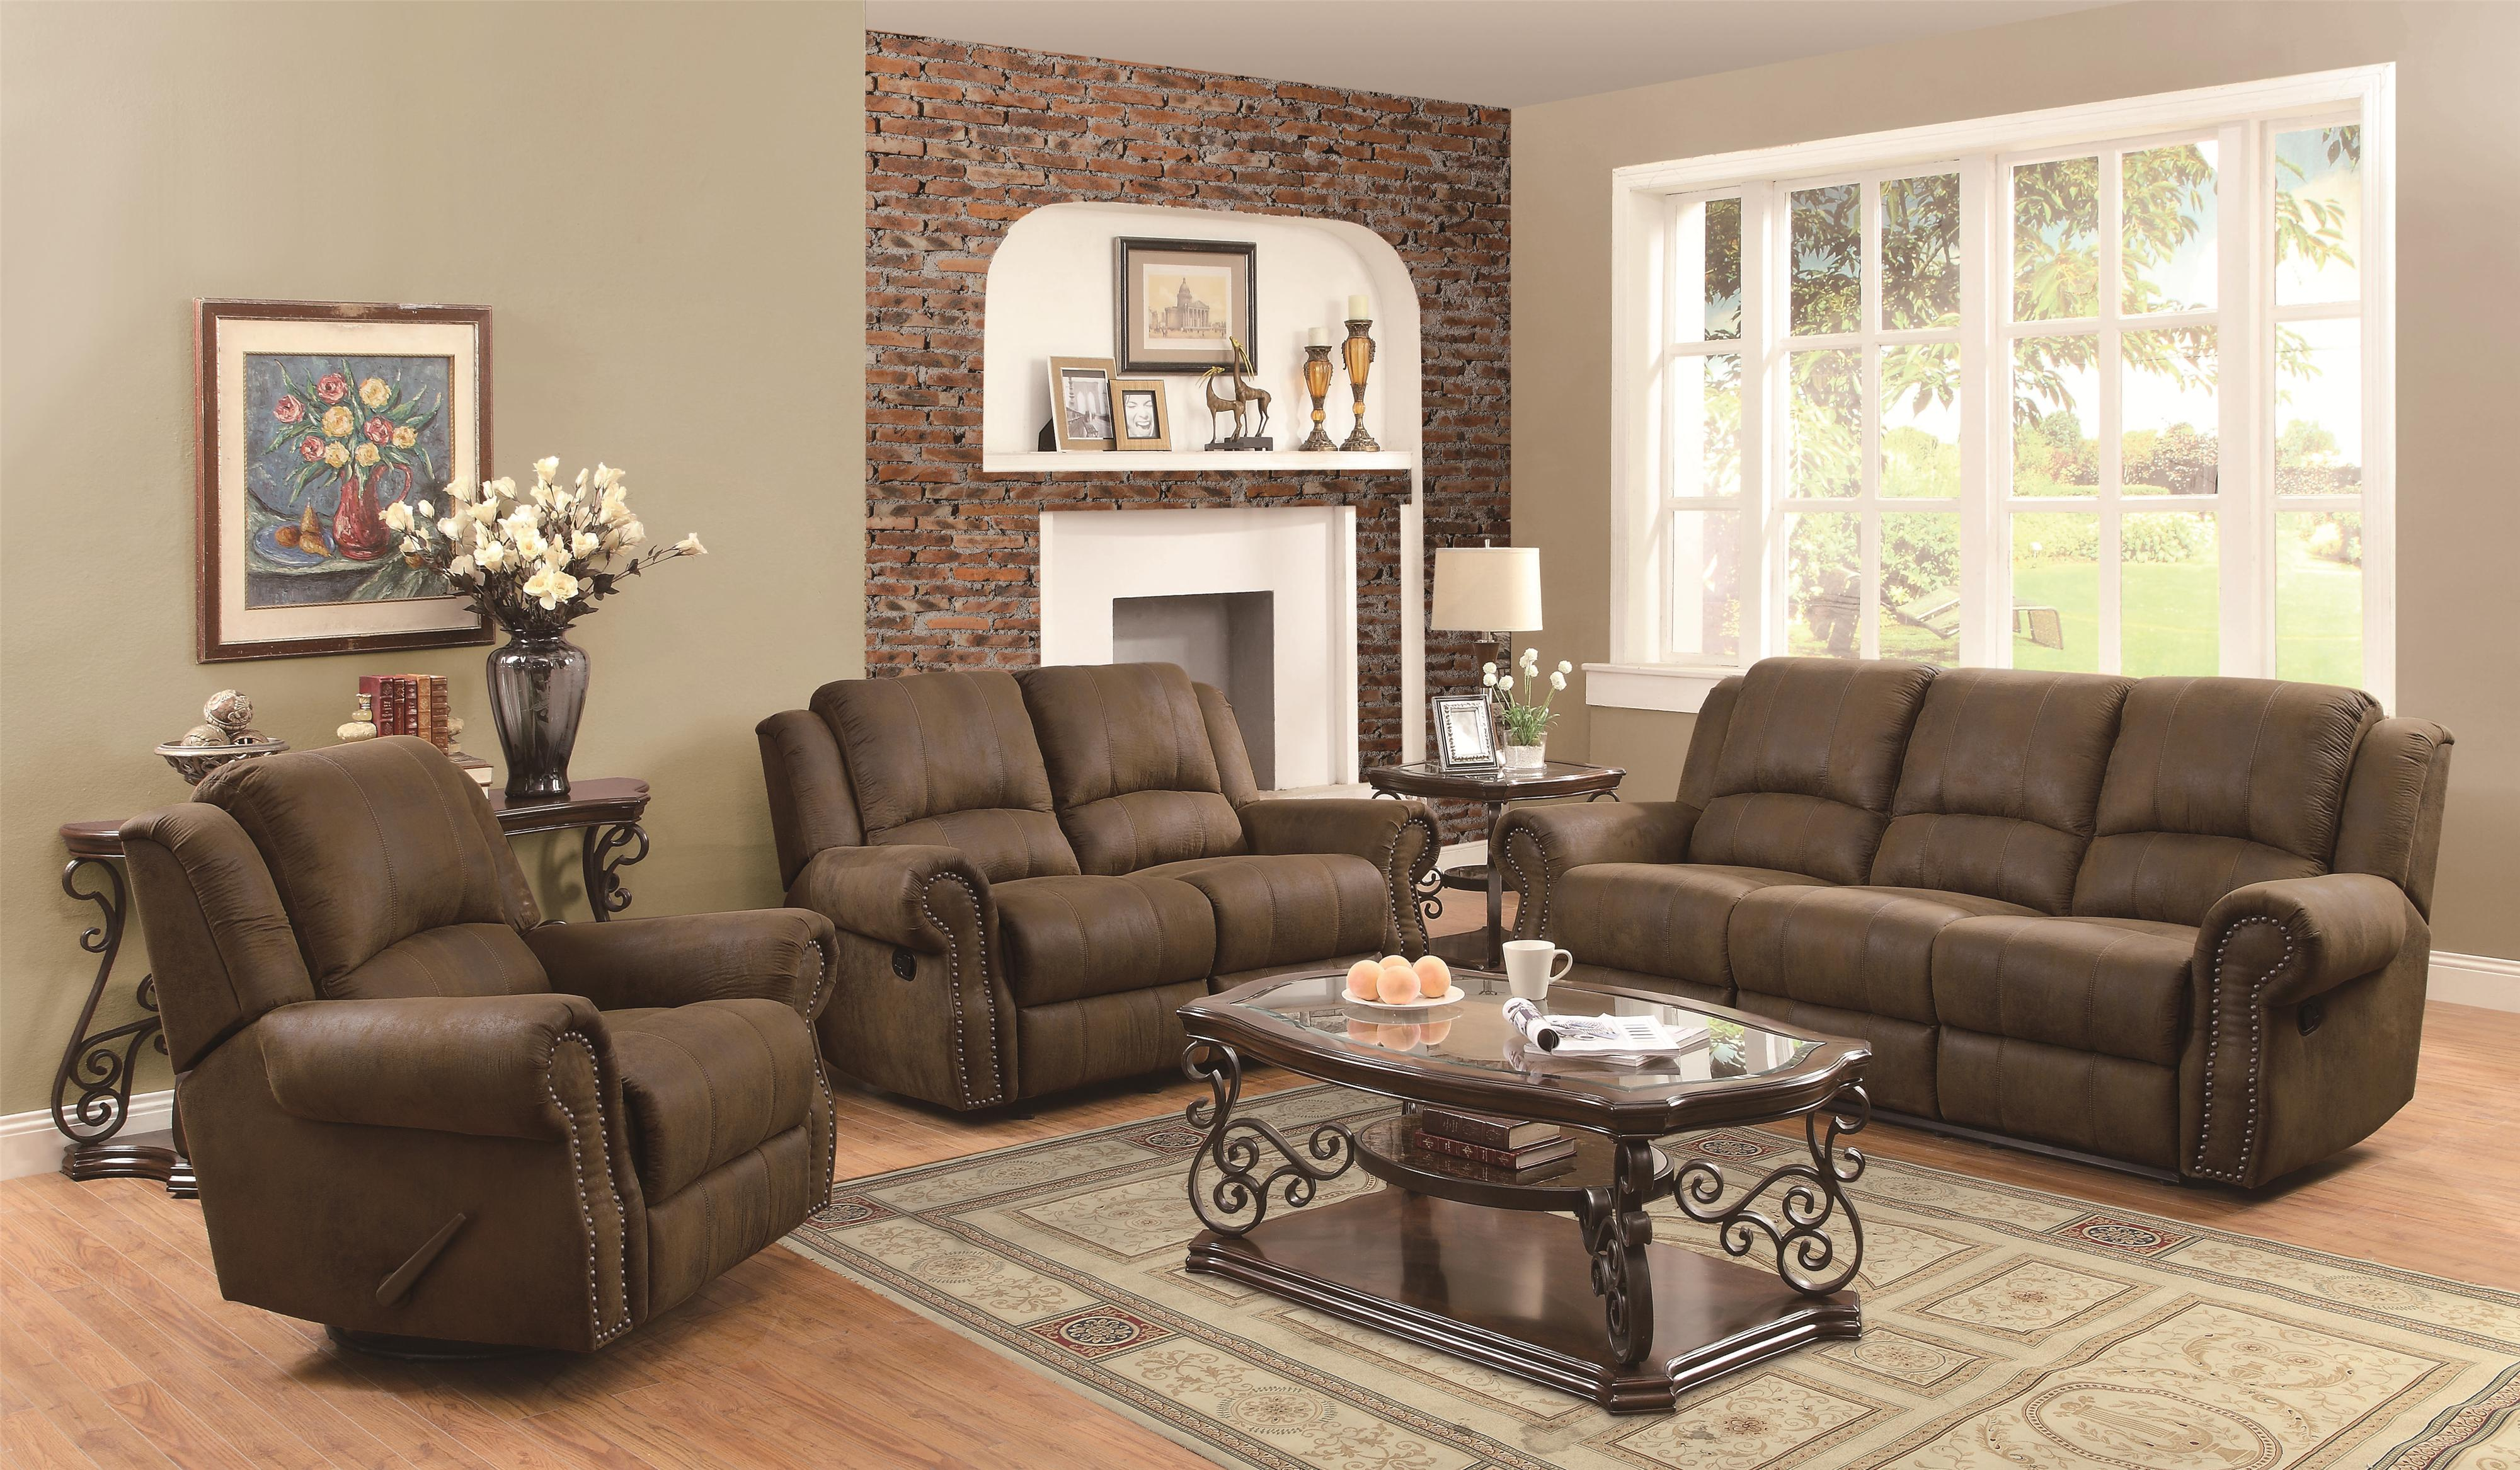 Bradley s Furniture Etc Rustic Reclining Sofas and Recliners